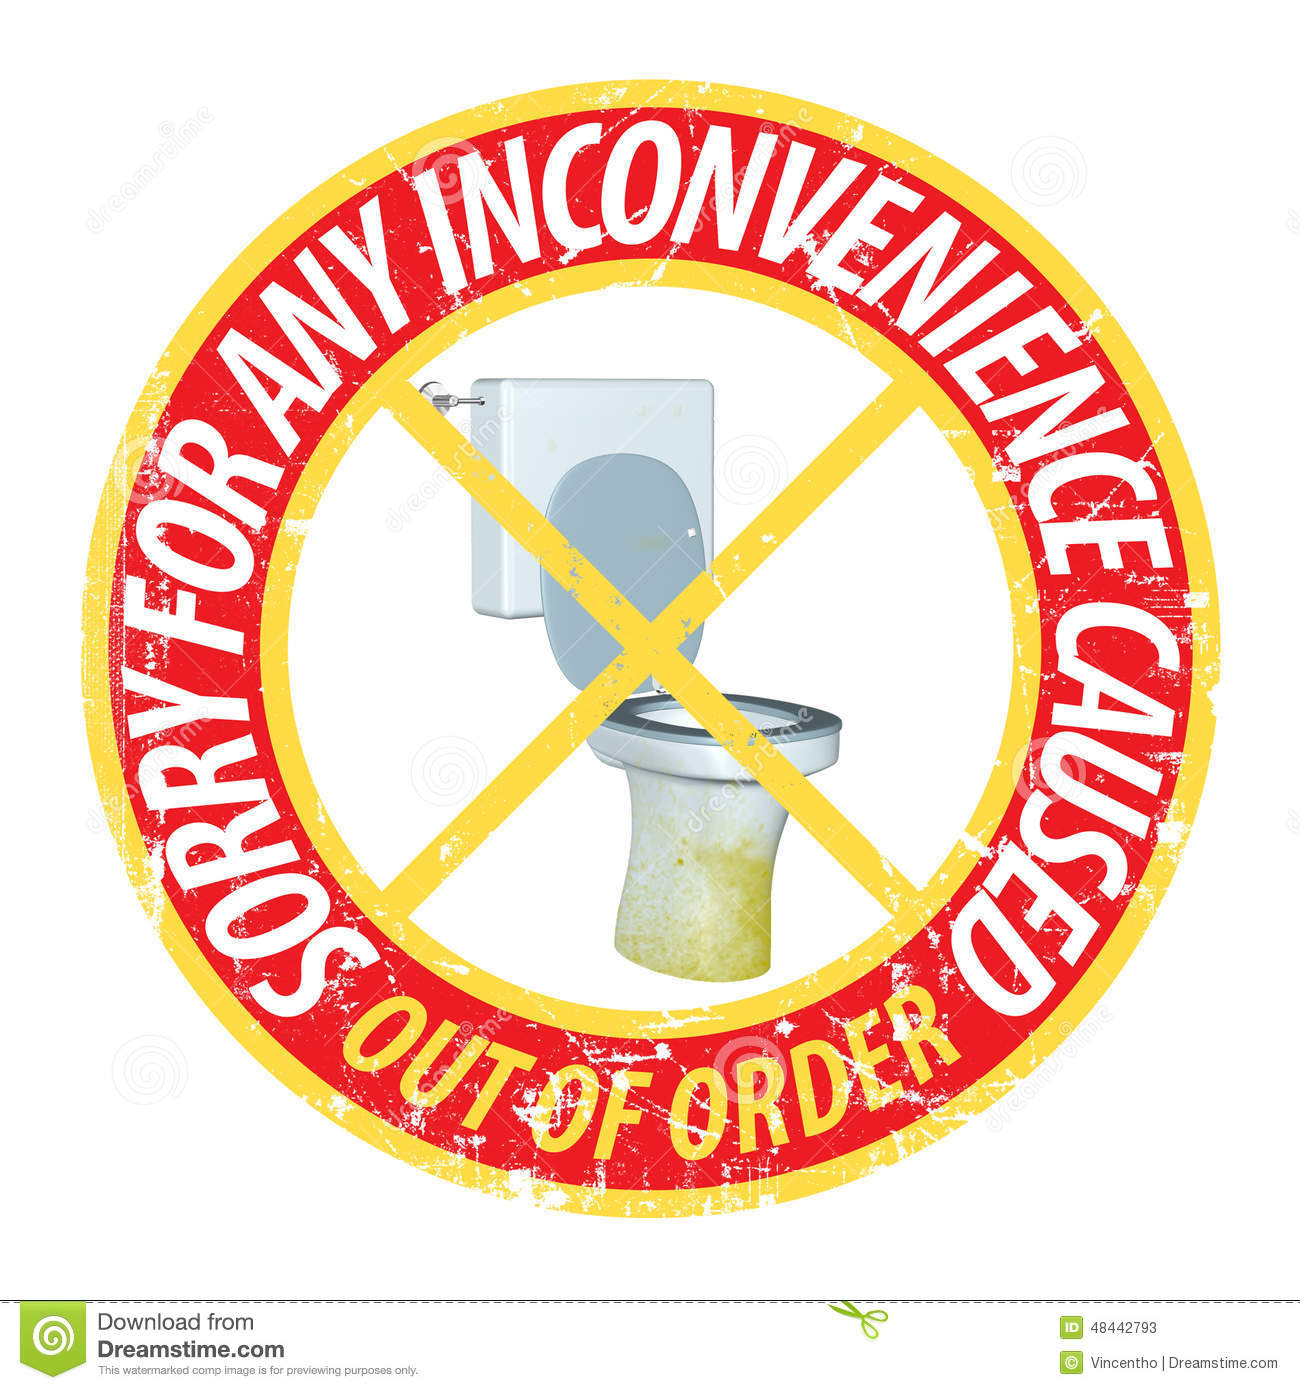 Bathroom out of order sign - Royalty Free Vector